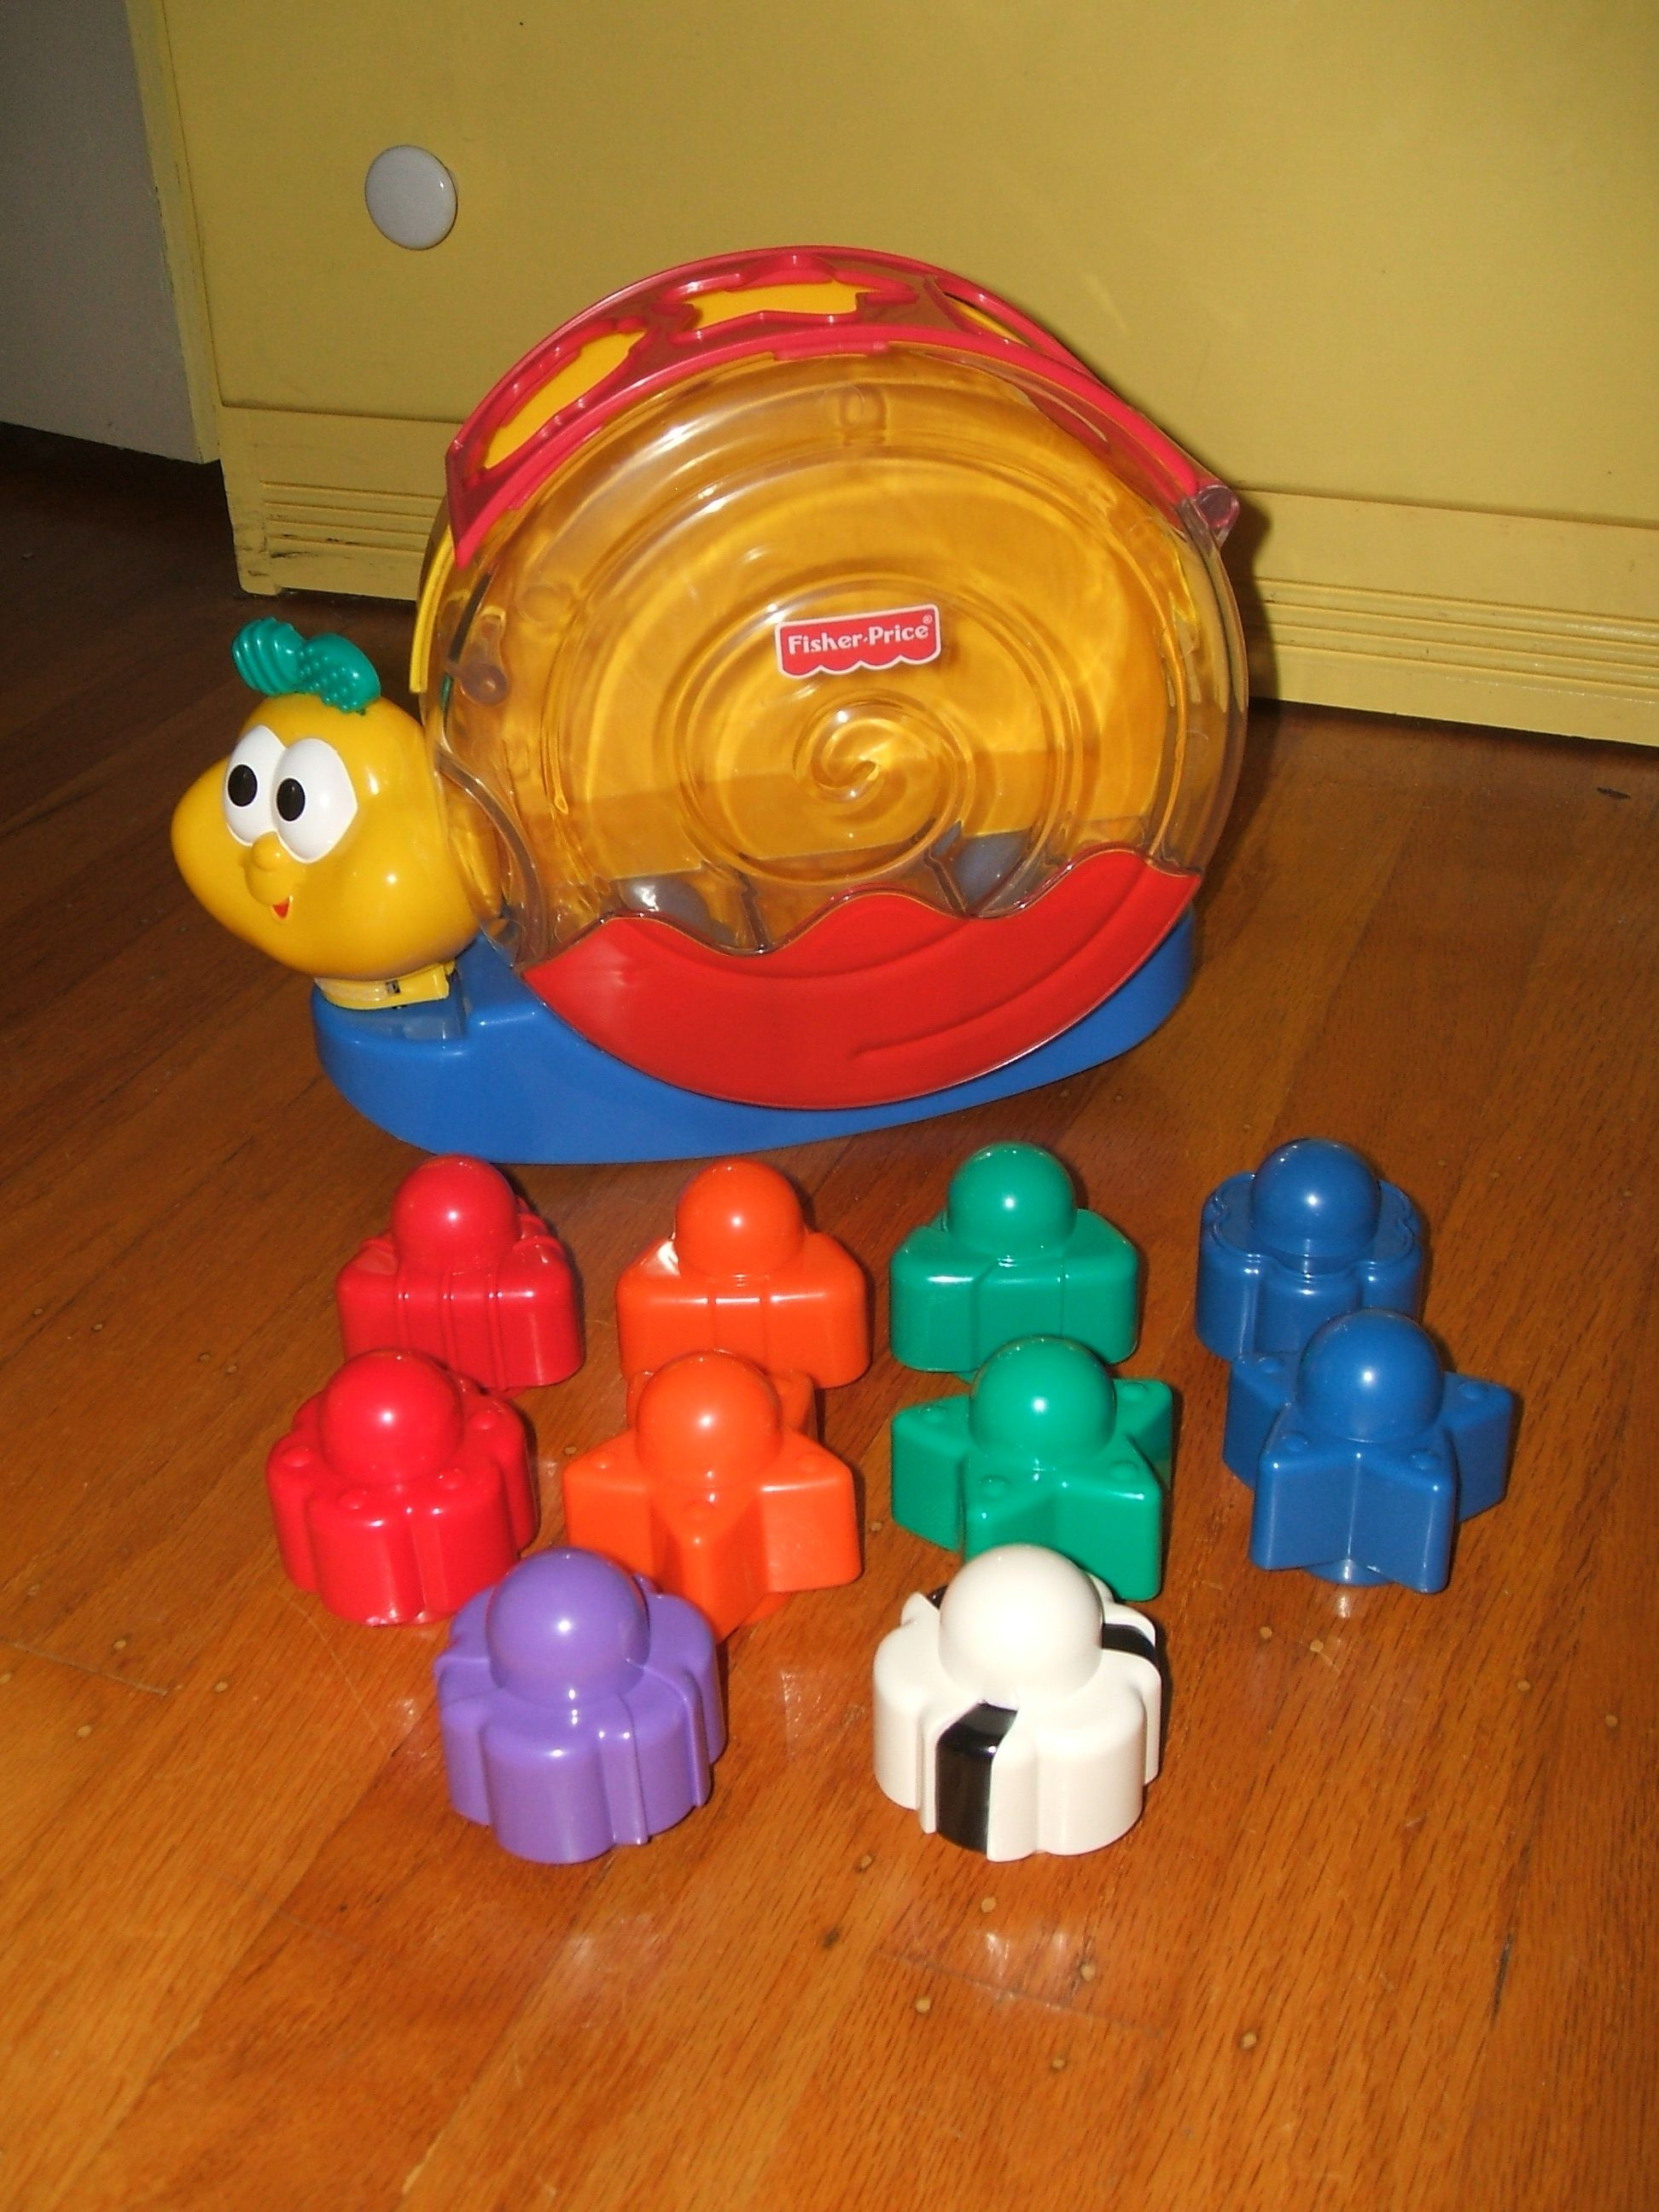 Fisher Price Singing Snail Pail And His Set Of 10 Stack And Posting Blocks Rock Him A Little Ad He Plays A Happy Litt Fisher Price Toys Cute Toys Fisher Price